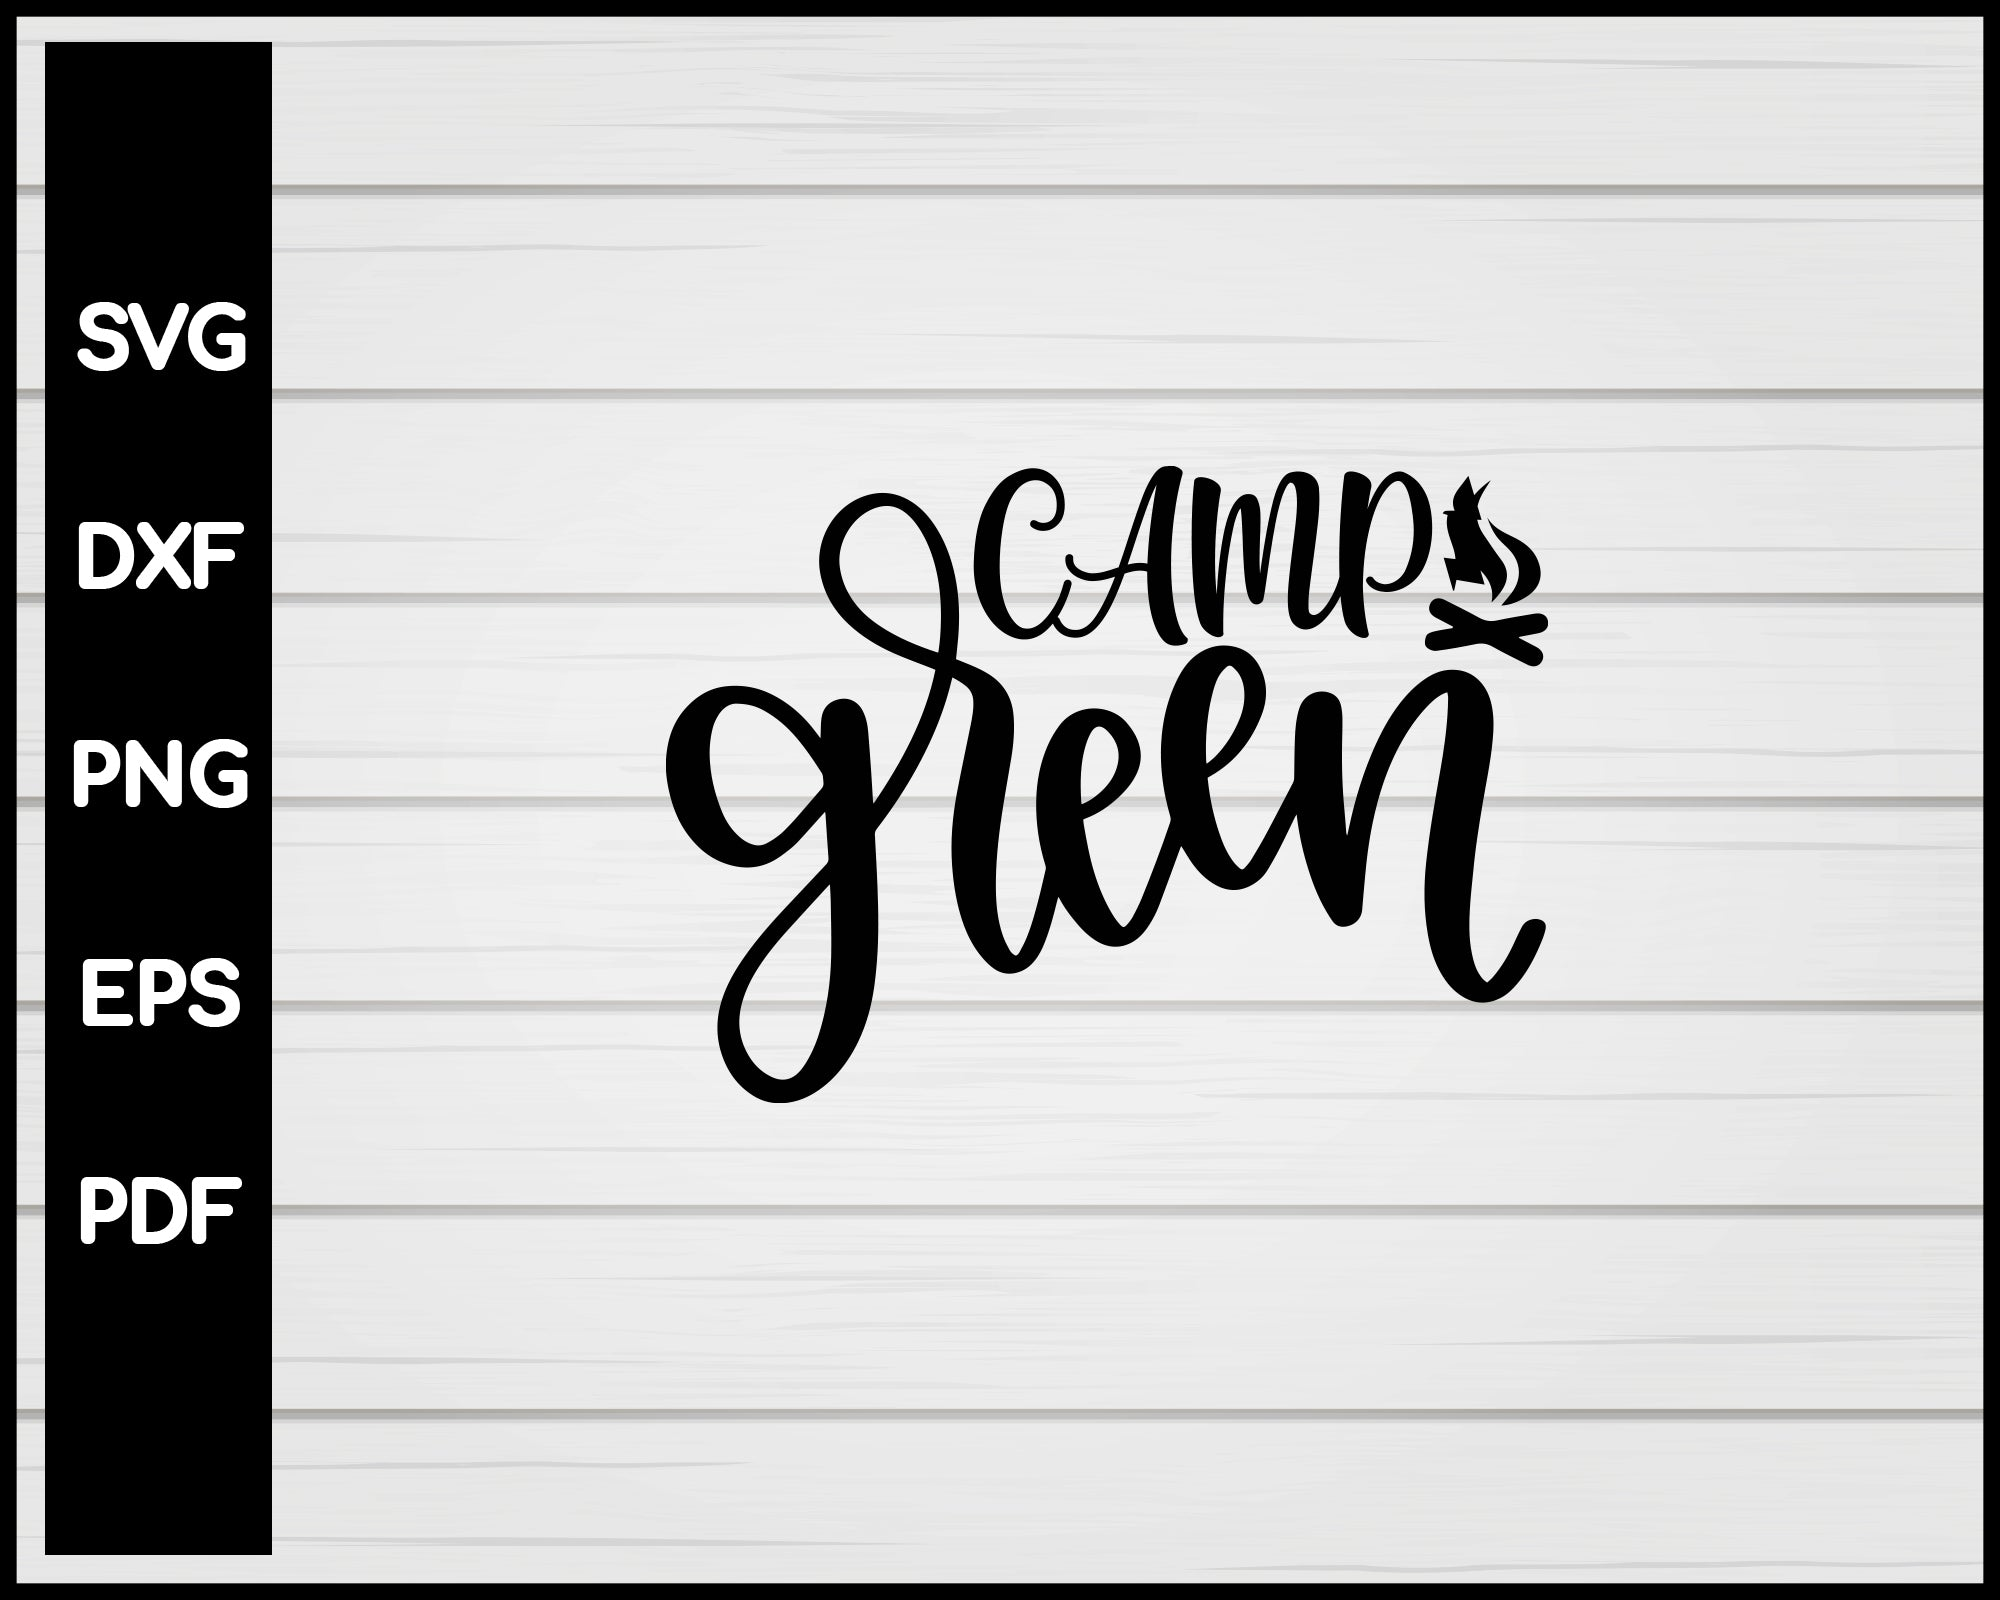 Camp Queen svg Cut File For Cricut Silhouette eps png dxf Printable Files